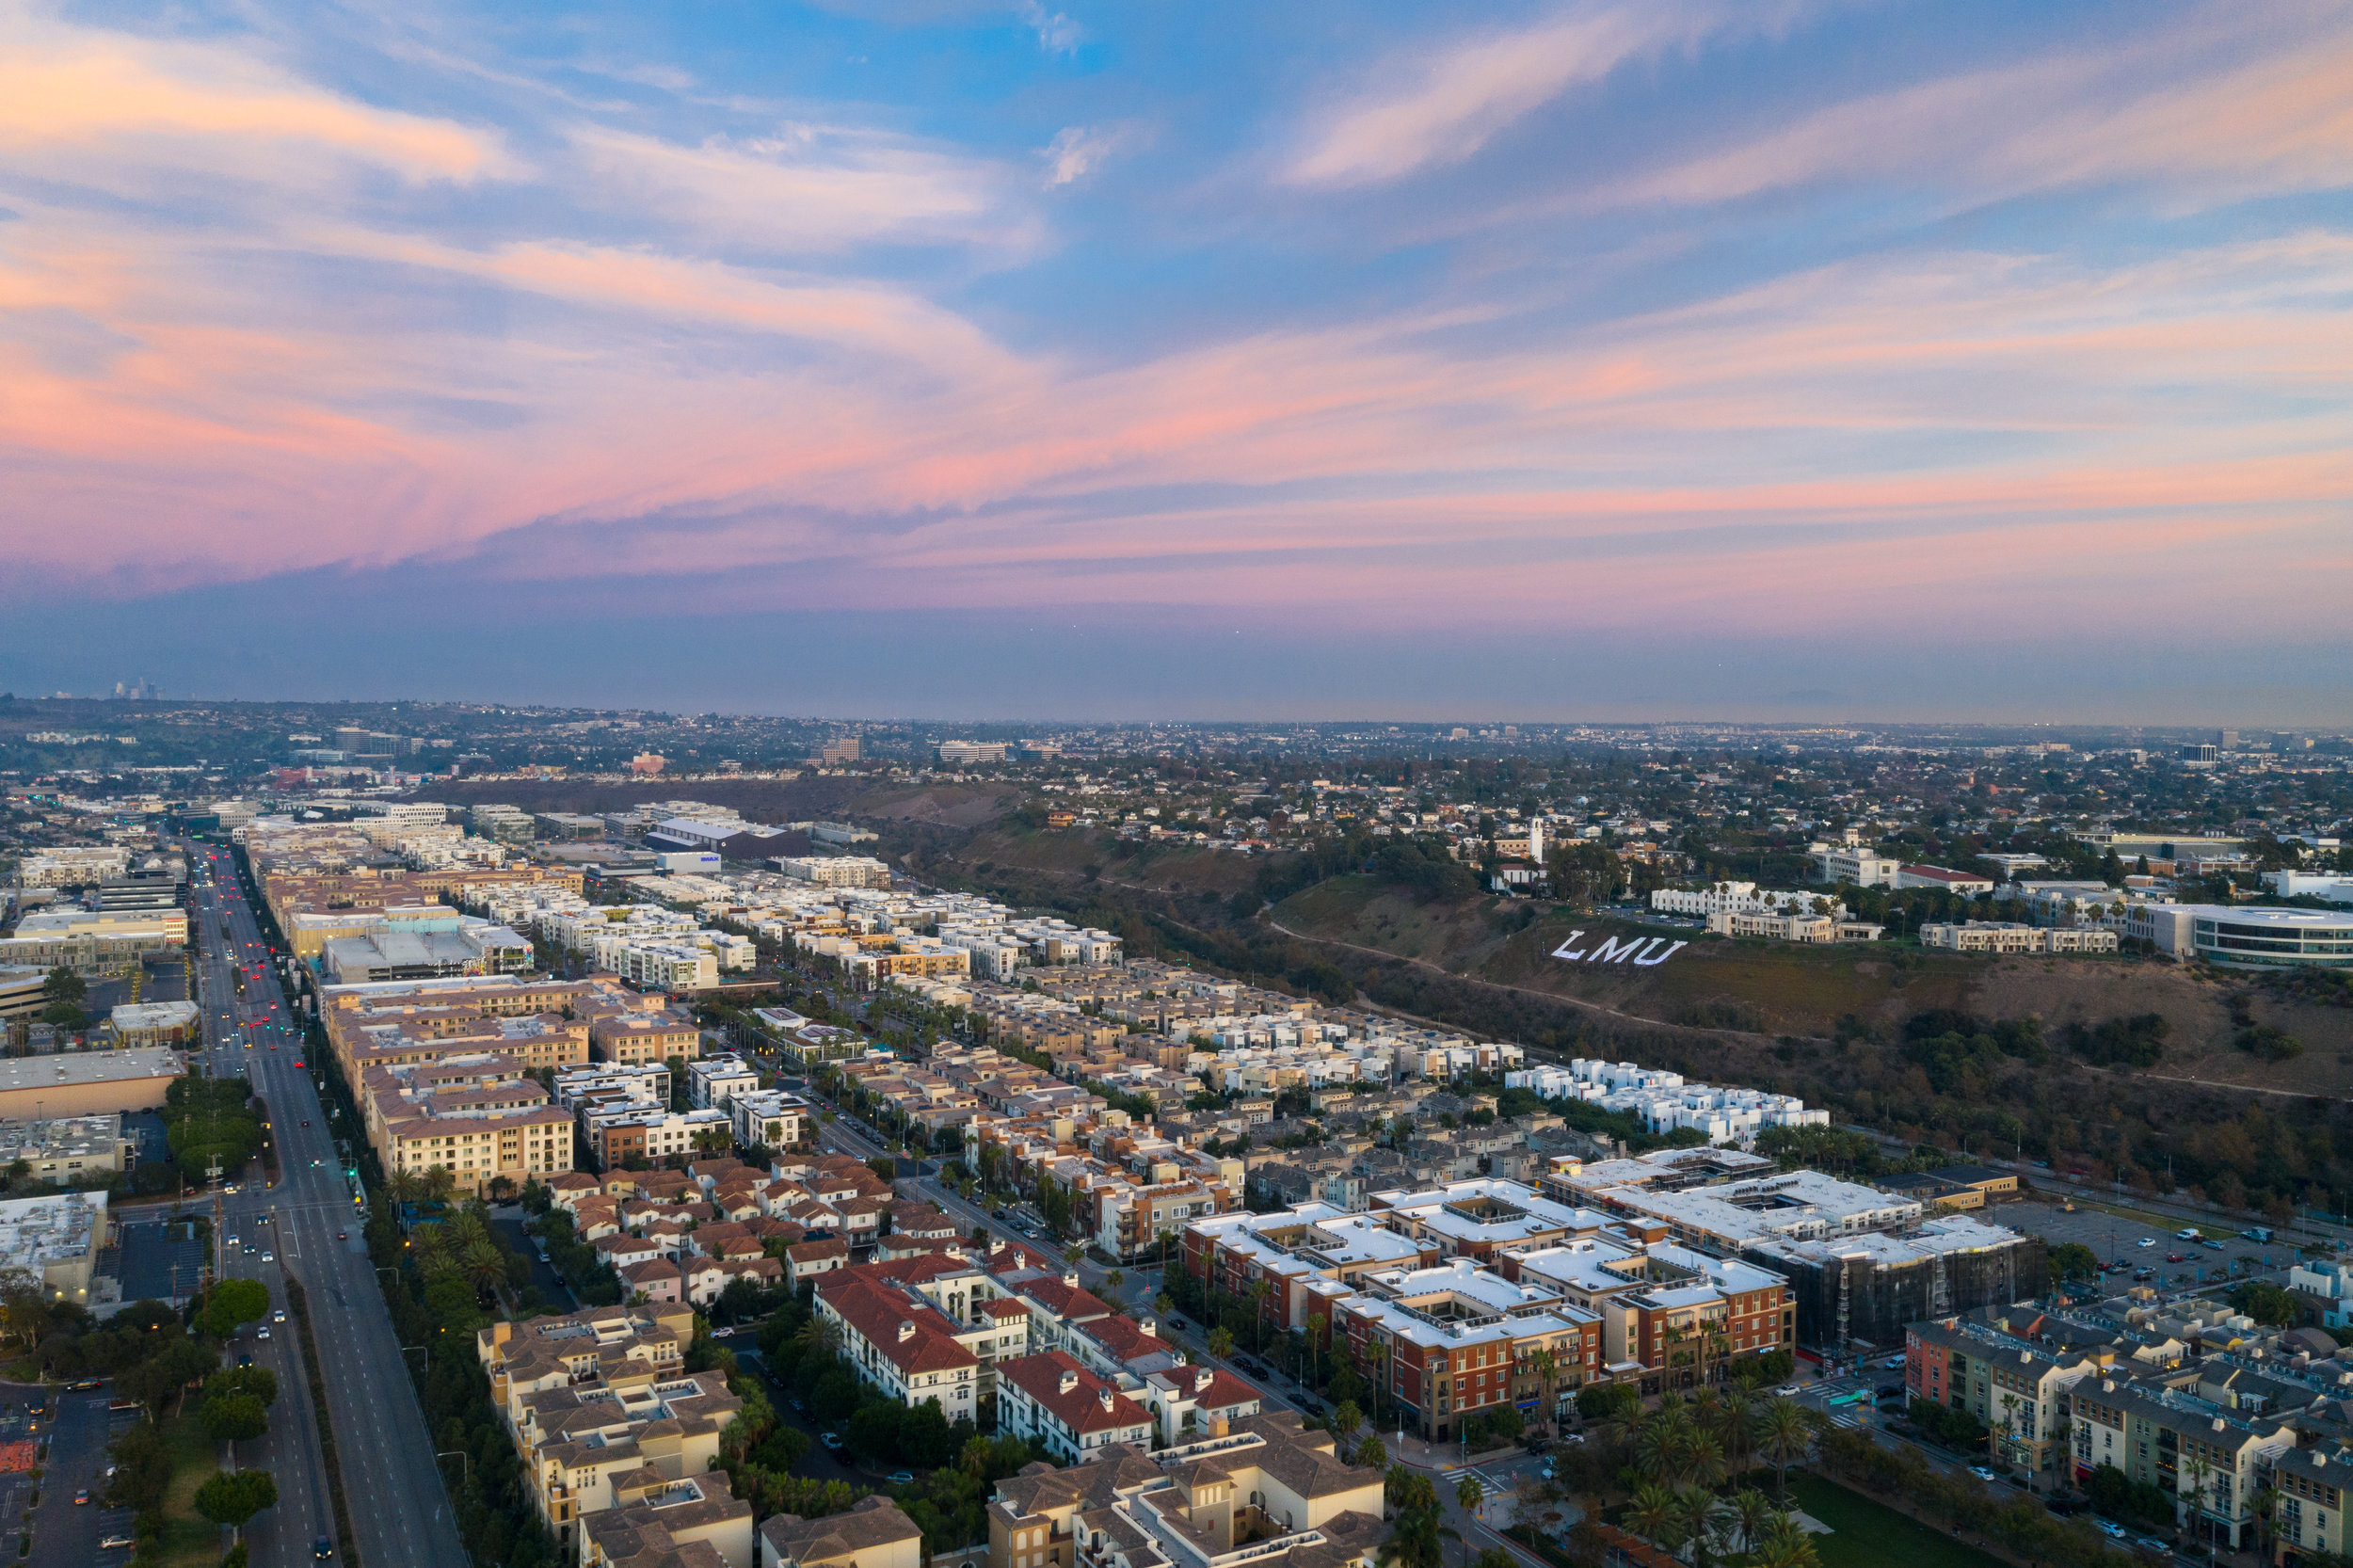 View of Playa Vista from the west